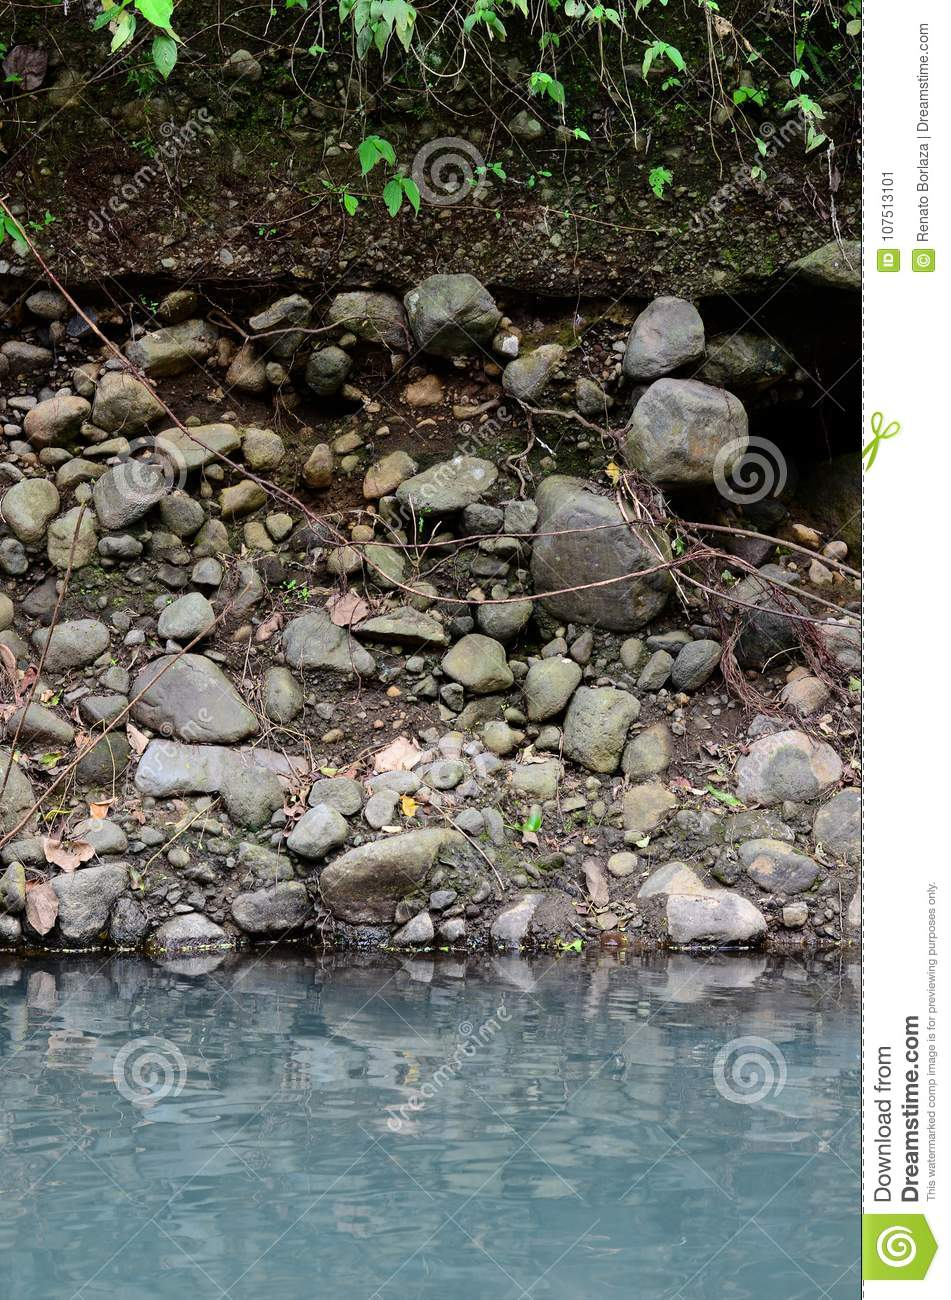 Deeply eroded river bank due to previous flooding